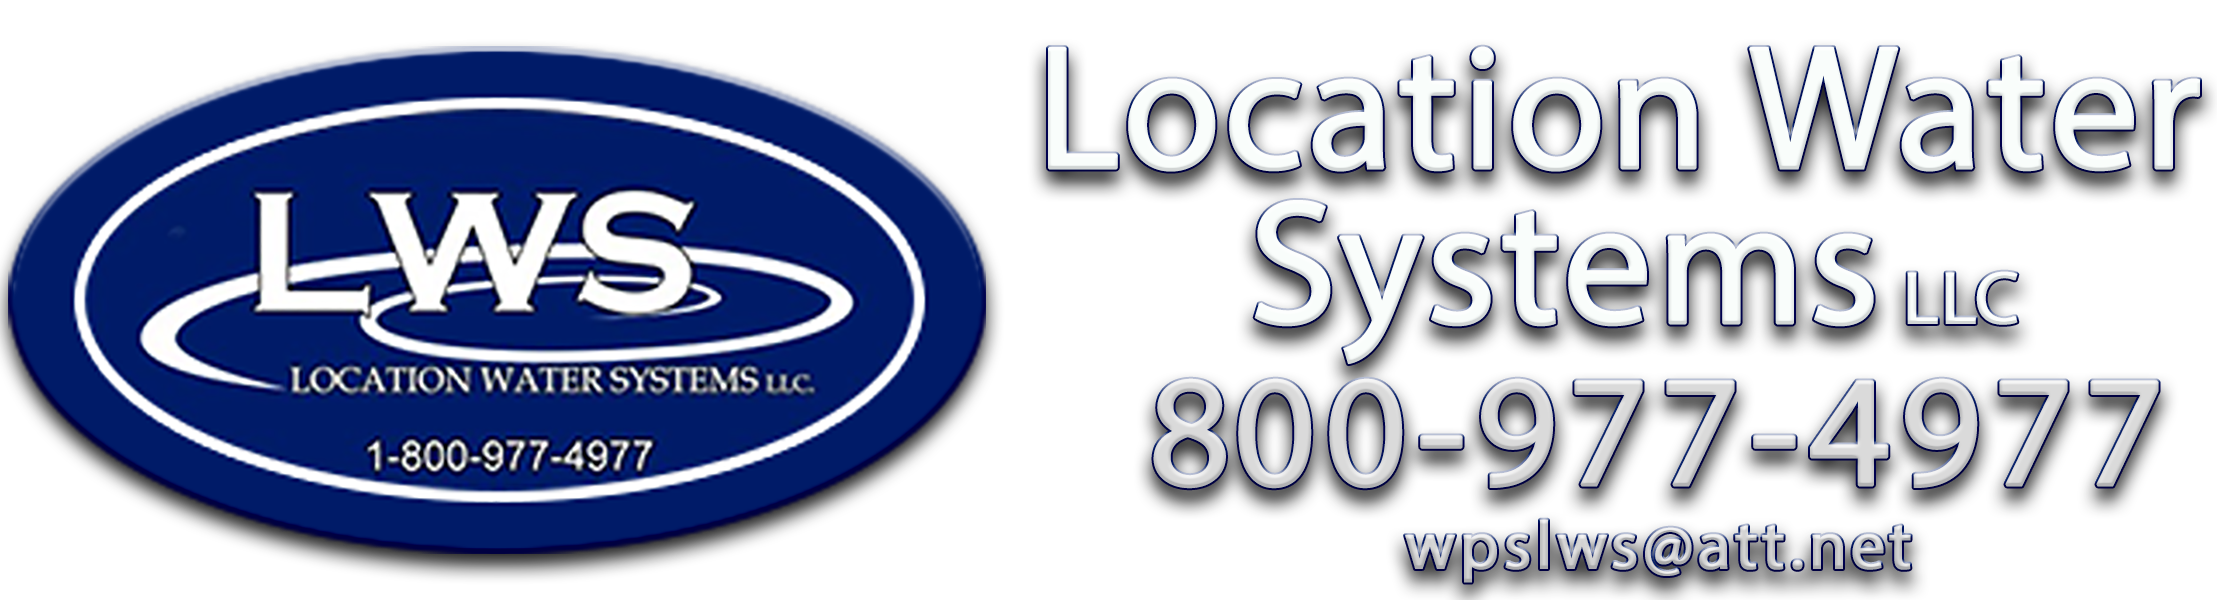 Location Water Systems LLC